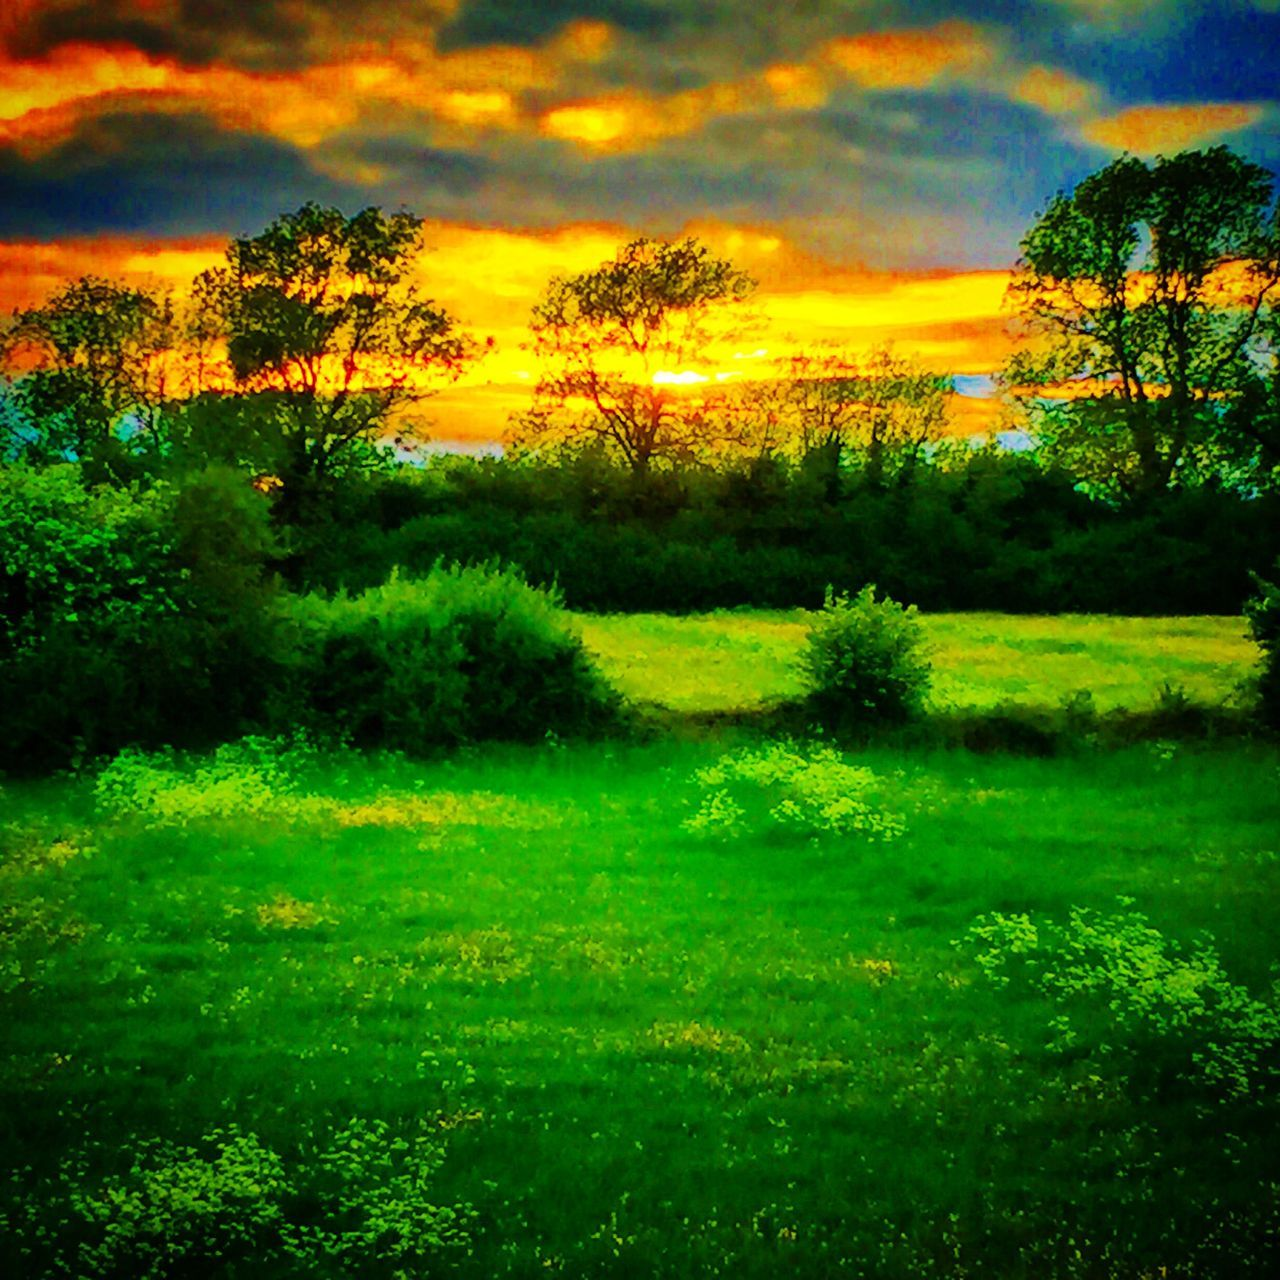 Green fields in the uk with sunset Sunset Sun Fields Green Fields Northampton Northamptonshire Northants Weather Weather Channel Green Grass Hedges Trees Gardens Garden